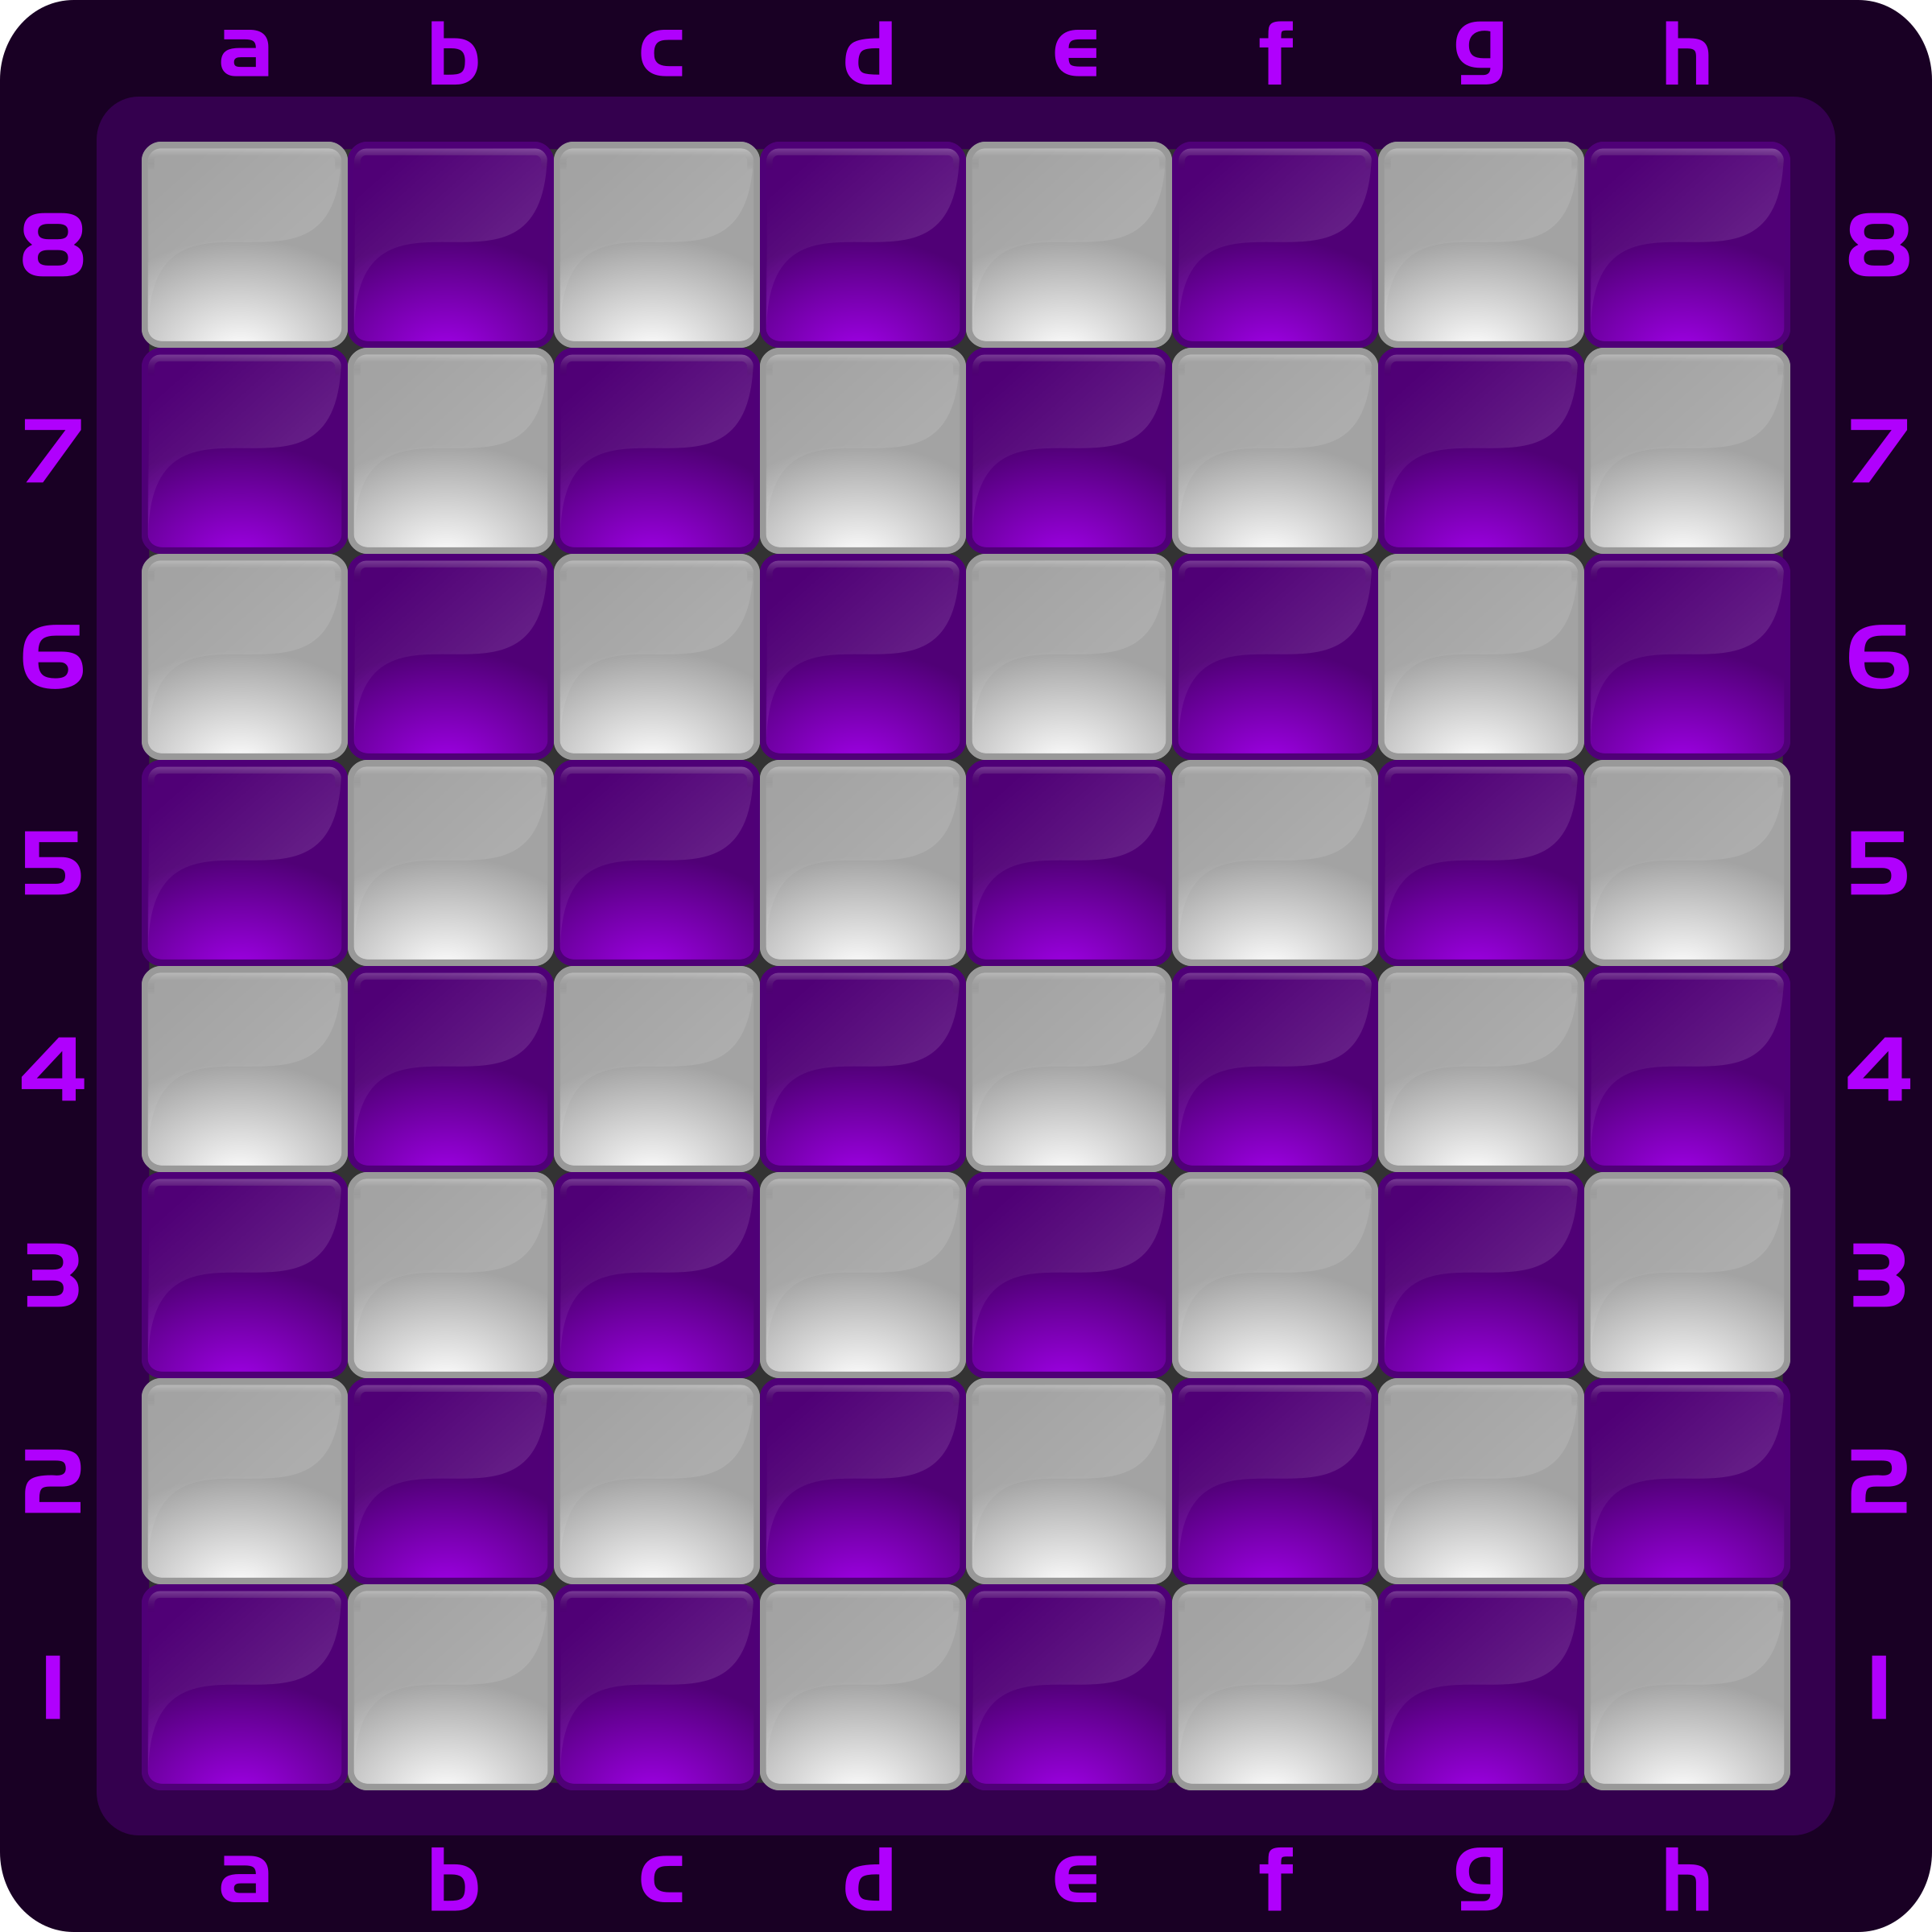 Chessboard Glossy Squares - purple by DG-RA